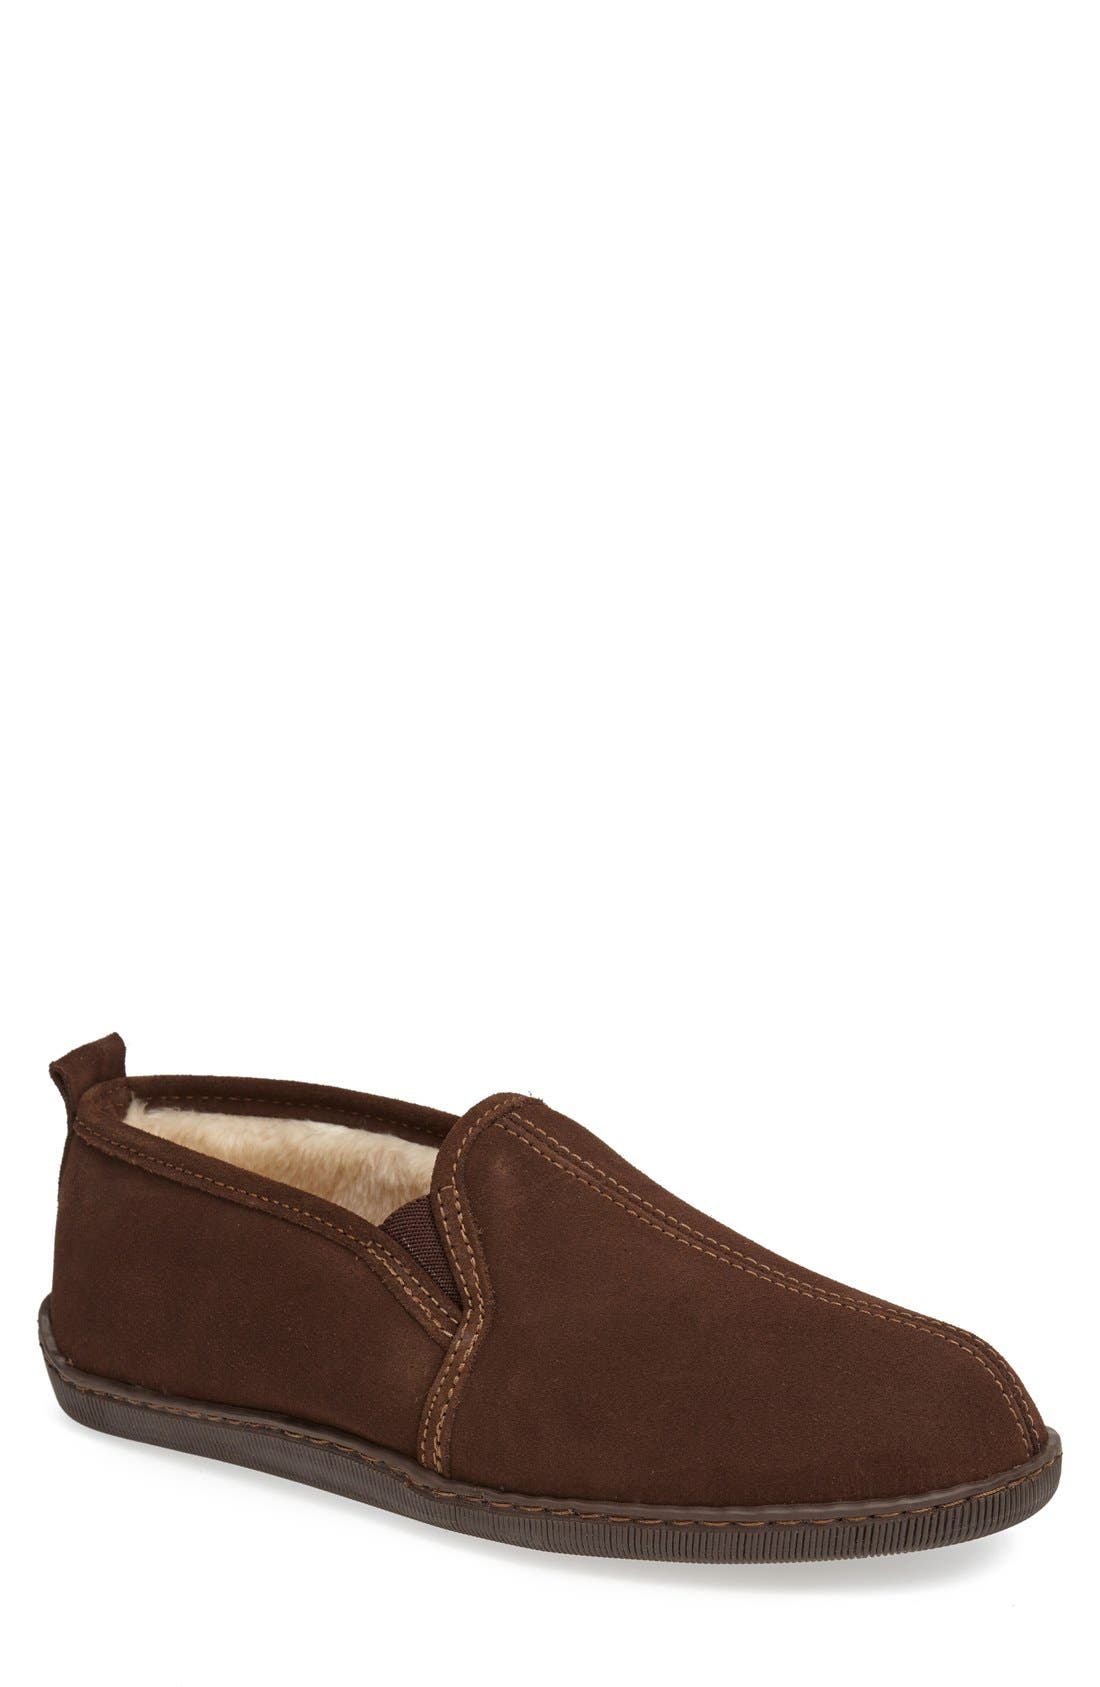 Suede Slipper,                             Main thumbnail 1, color,                             CHOCOLATE